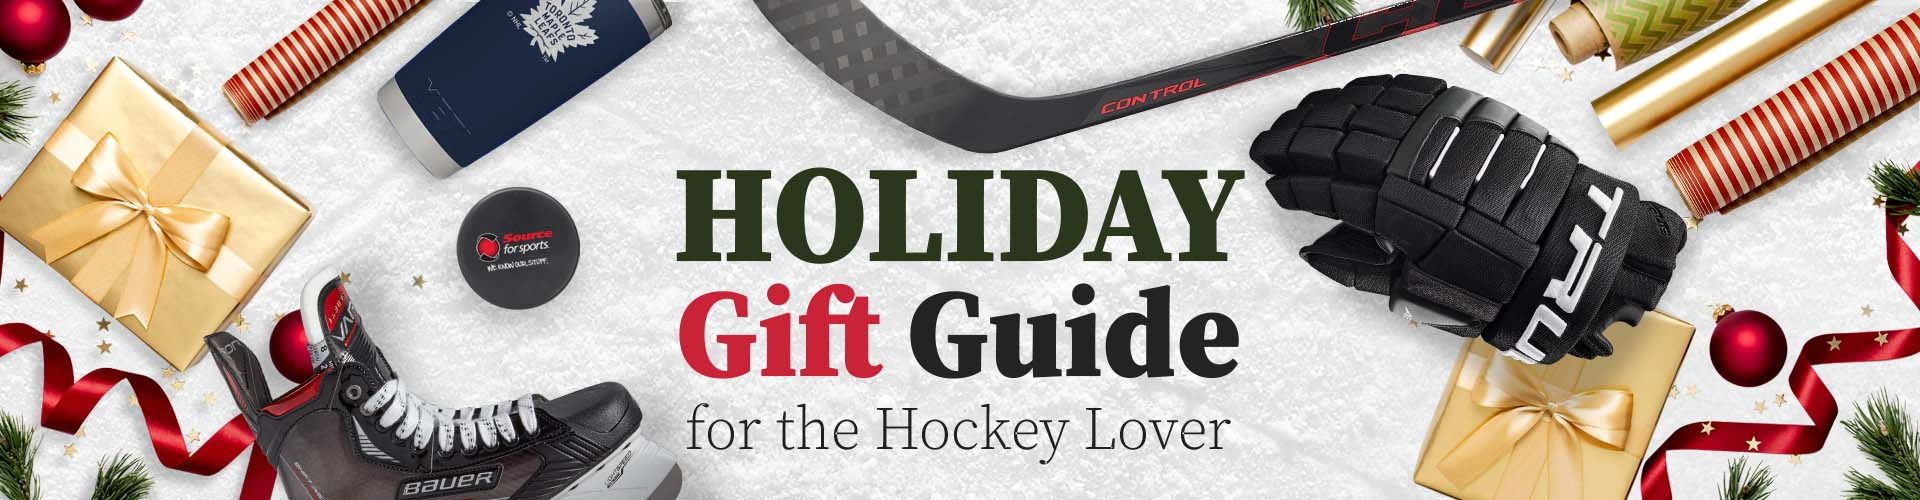 Shop Our Holiday Gift Guide This Holiday Season & Score Great Gift Ideas For This Christmas. Shop In Store & Online At A Source For Sports Store Near You.